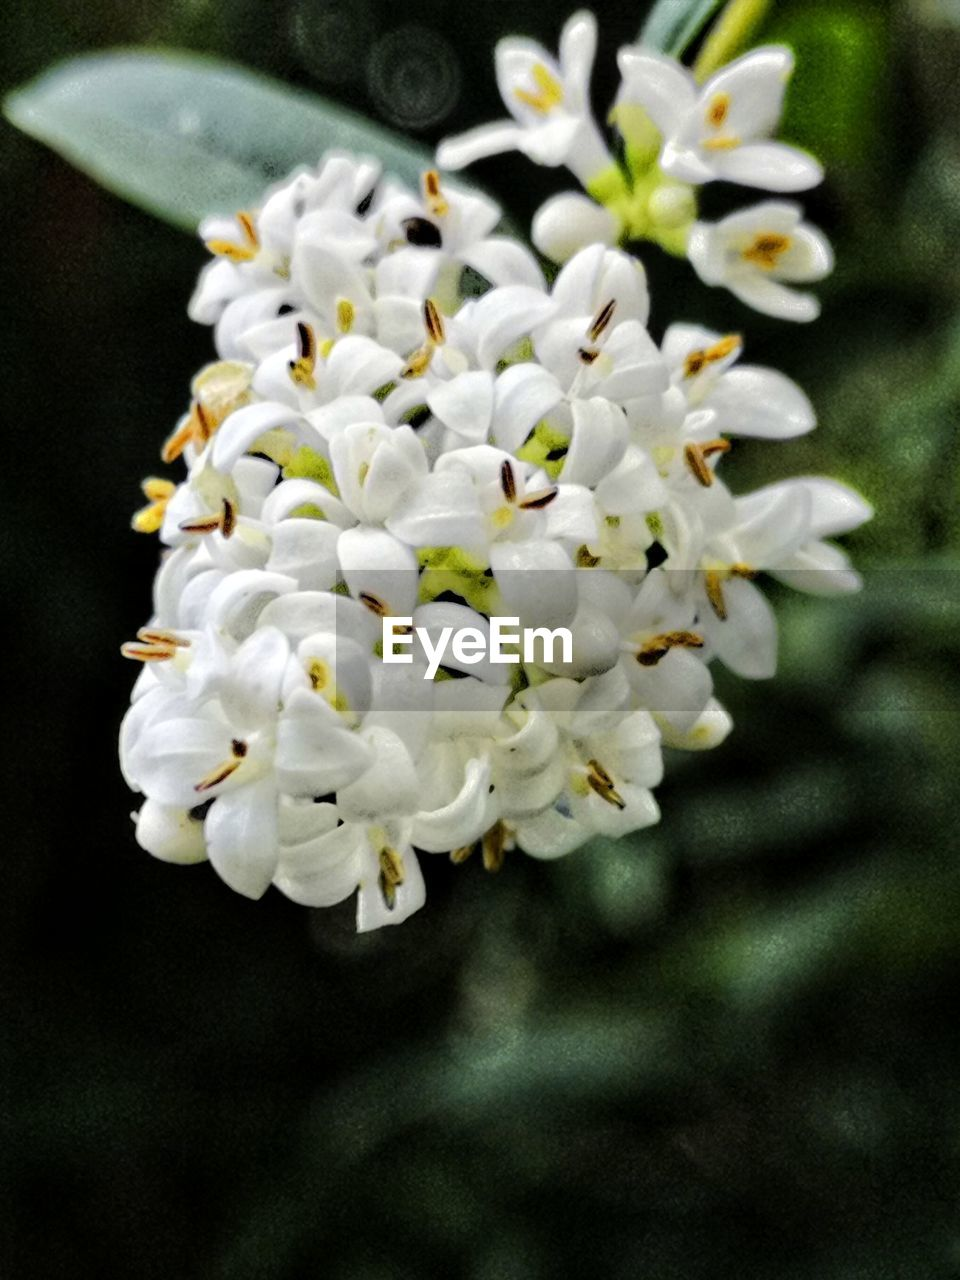 flower, flowering plant, freshness, fragility, plant, vulnerability, beauty in nature, white color, petal, growth, close-up, flower head, inflorescence, focus on foreground, nature, no people, day, pollen, botany, outdoors, bunch of flowers